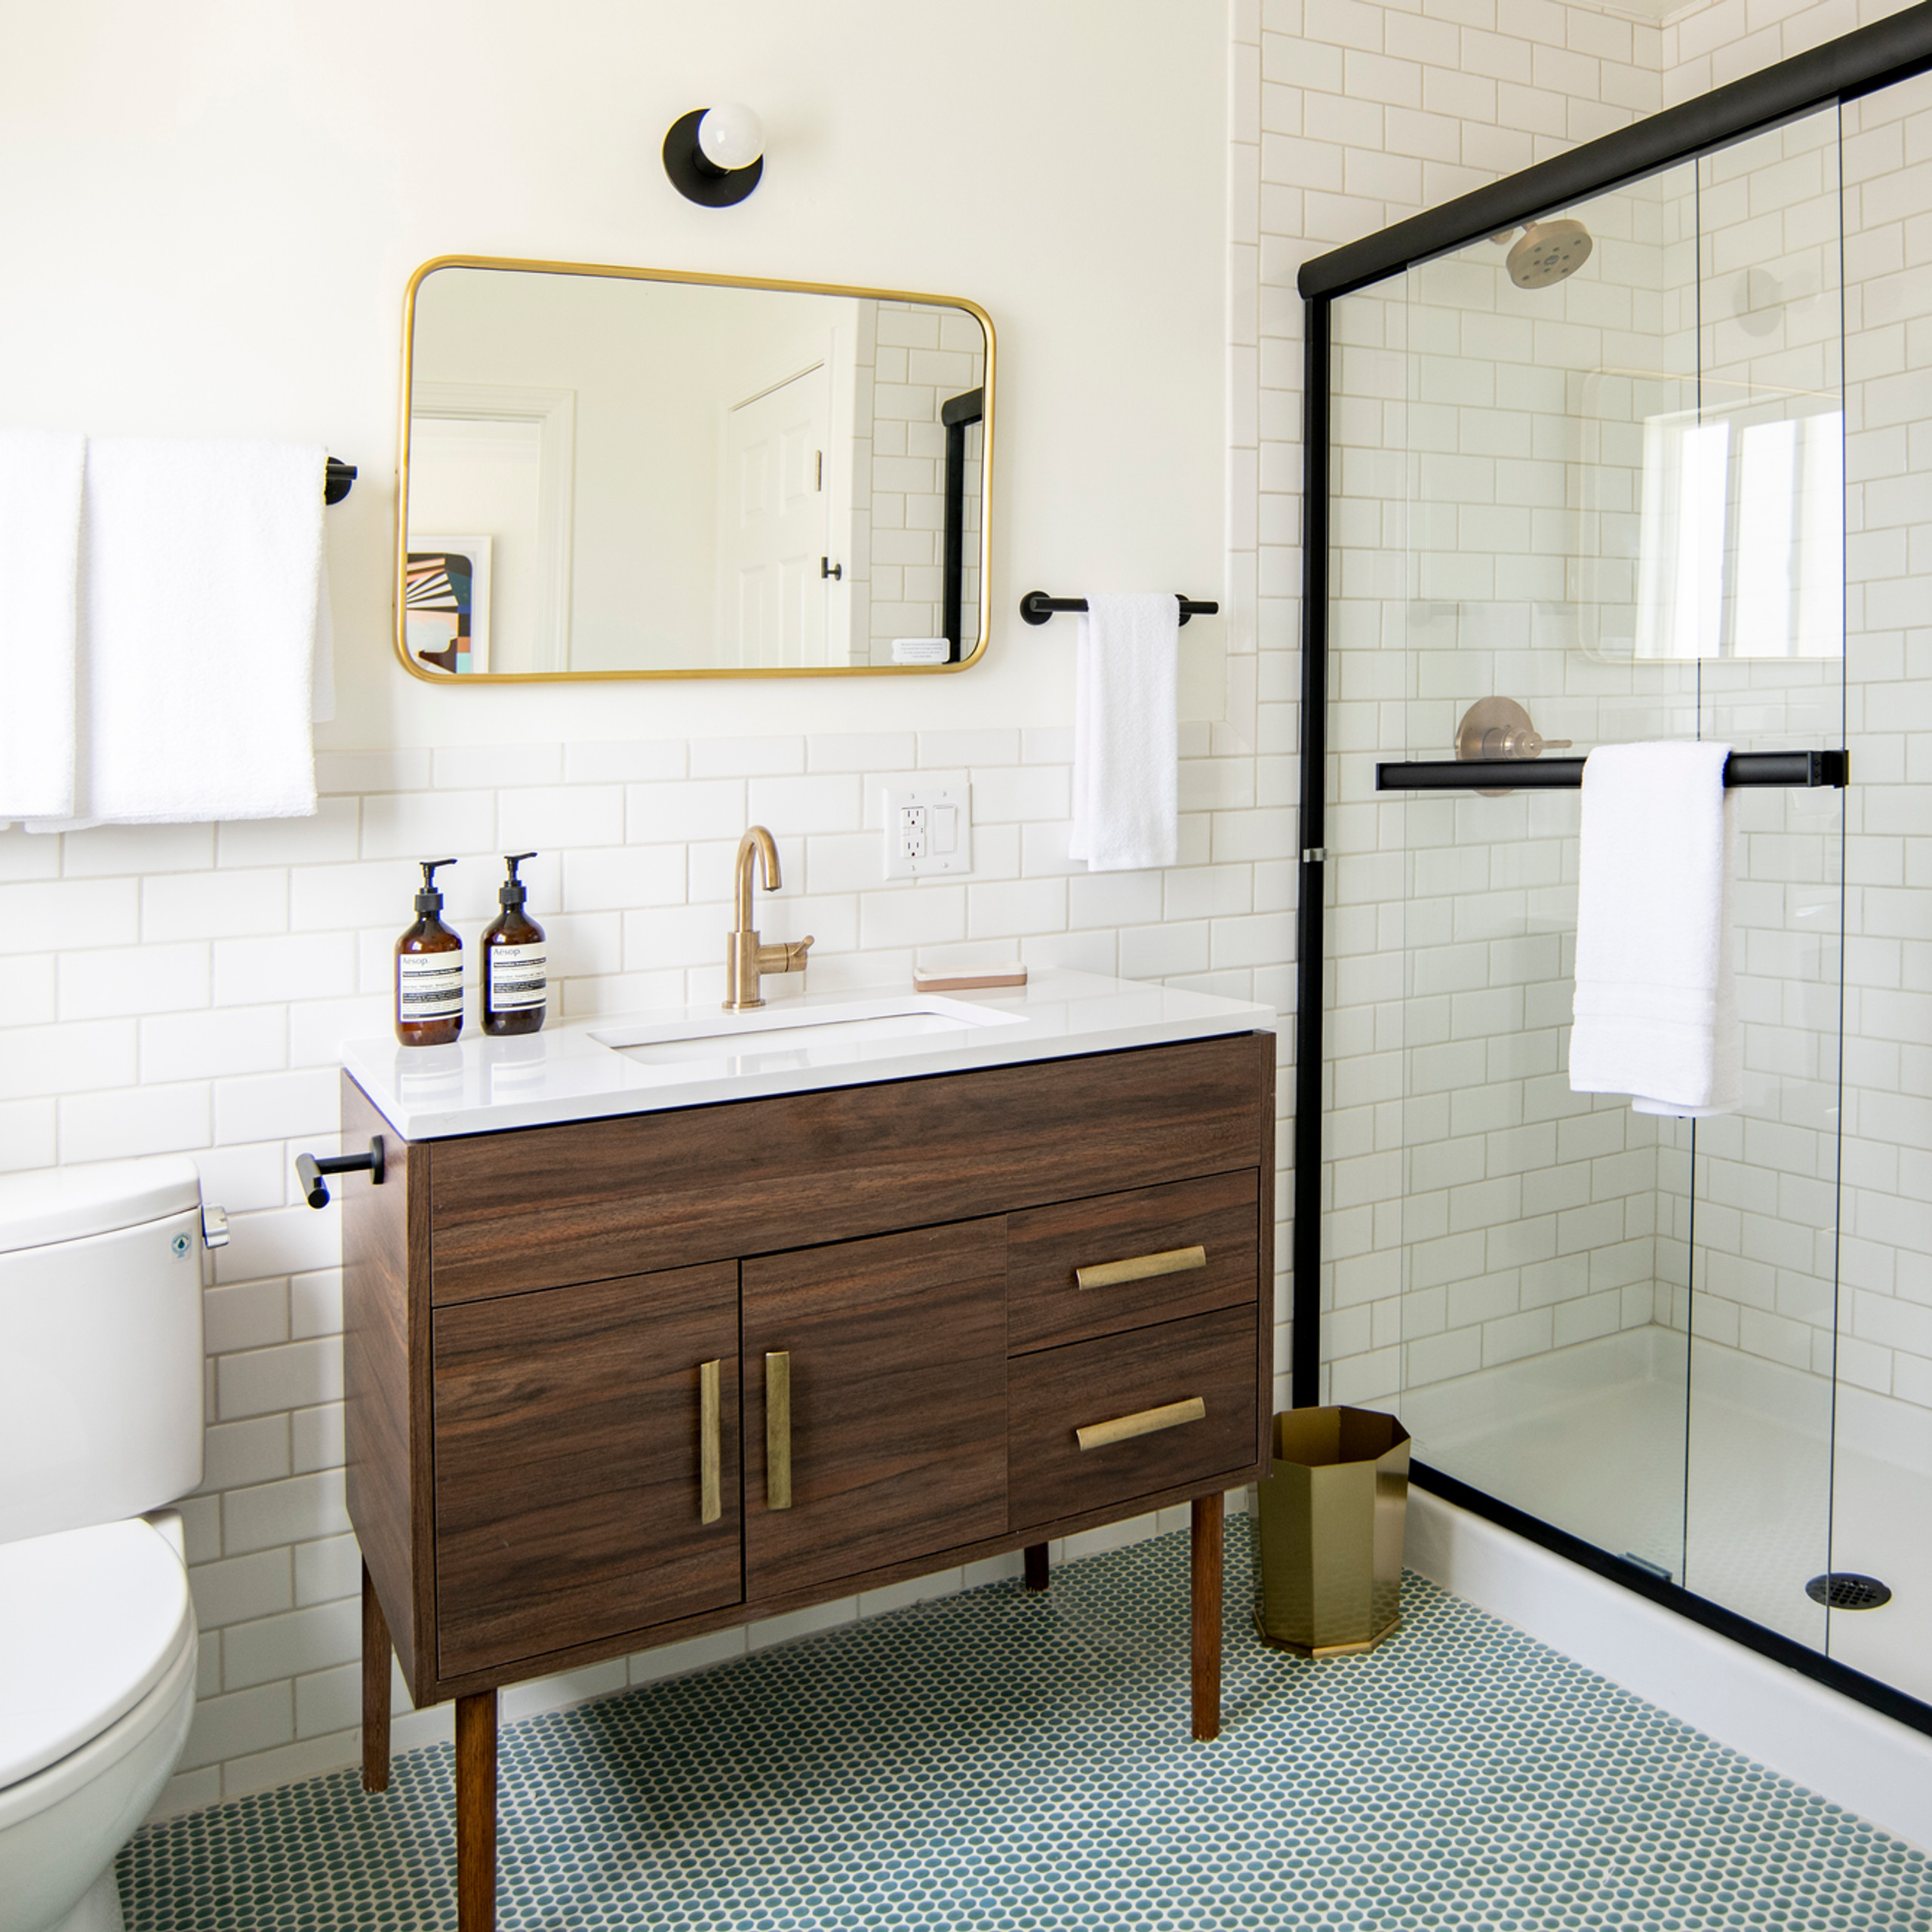 Broadway Motel Oakland Christina Higham Sun Soul Style Interiors Mid Century bathroom subway tile mint penny tile brass hardware